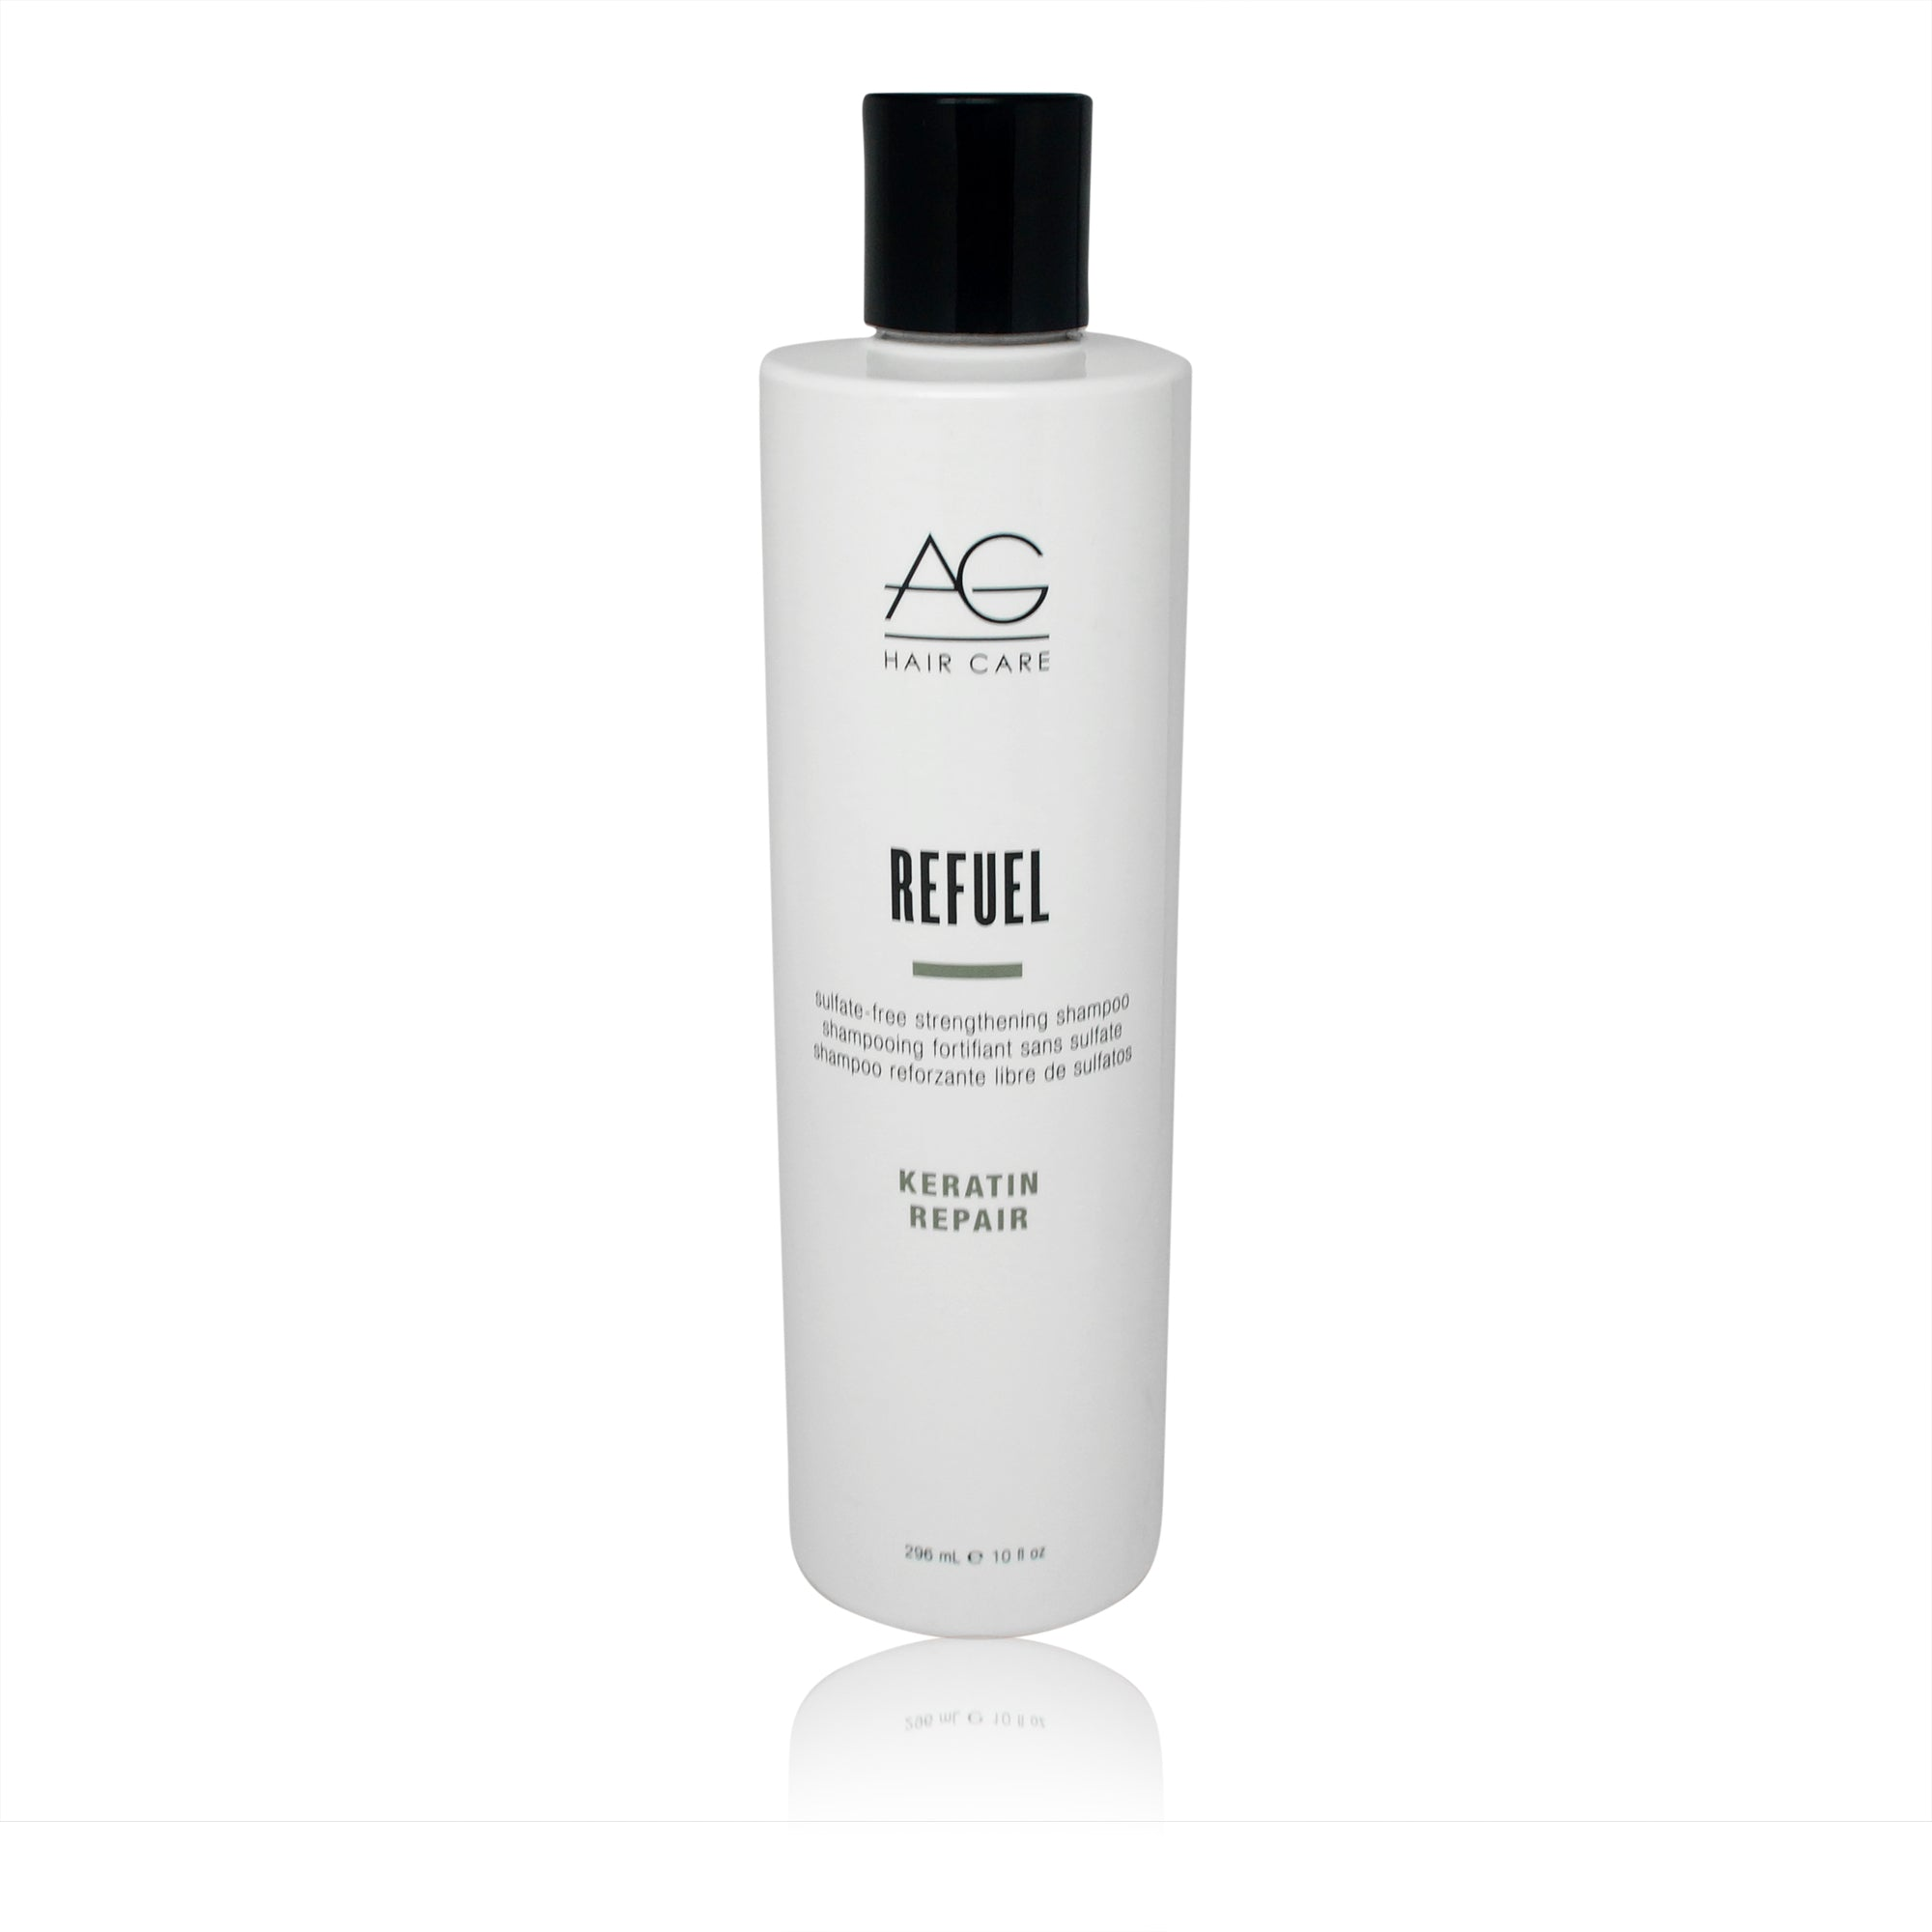 AGHAIR ~ REFUEL SULFATE-FREE STRENGTHENING SHAMPOO ~ 10OZ